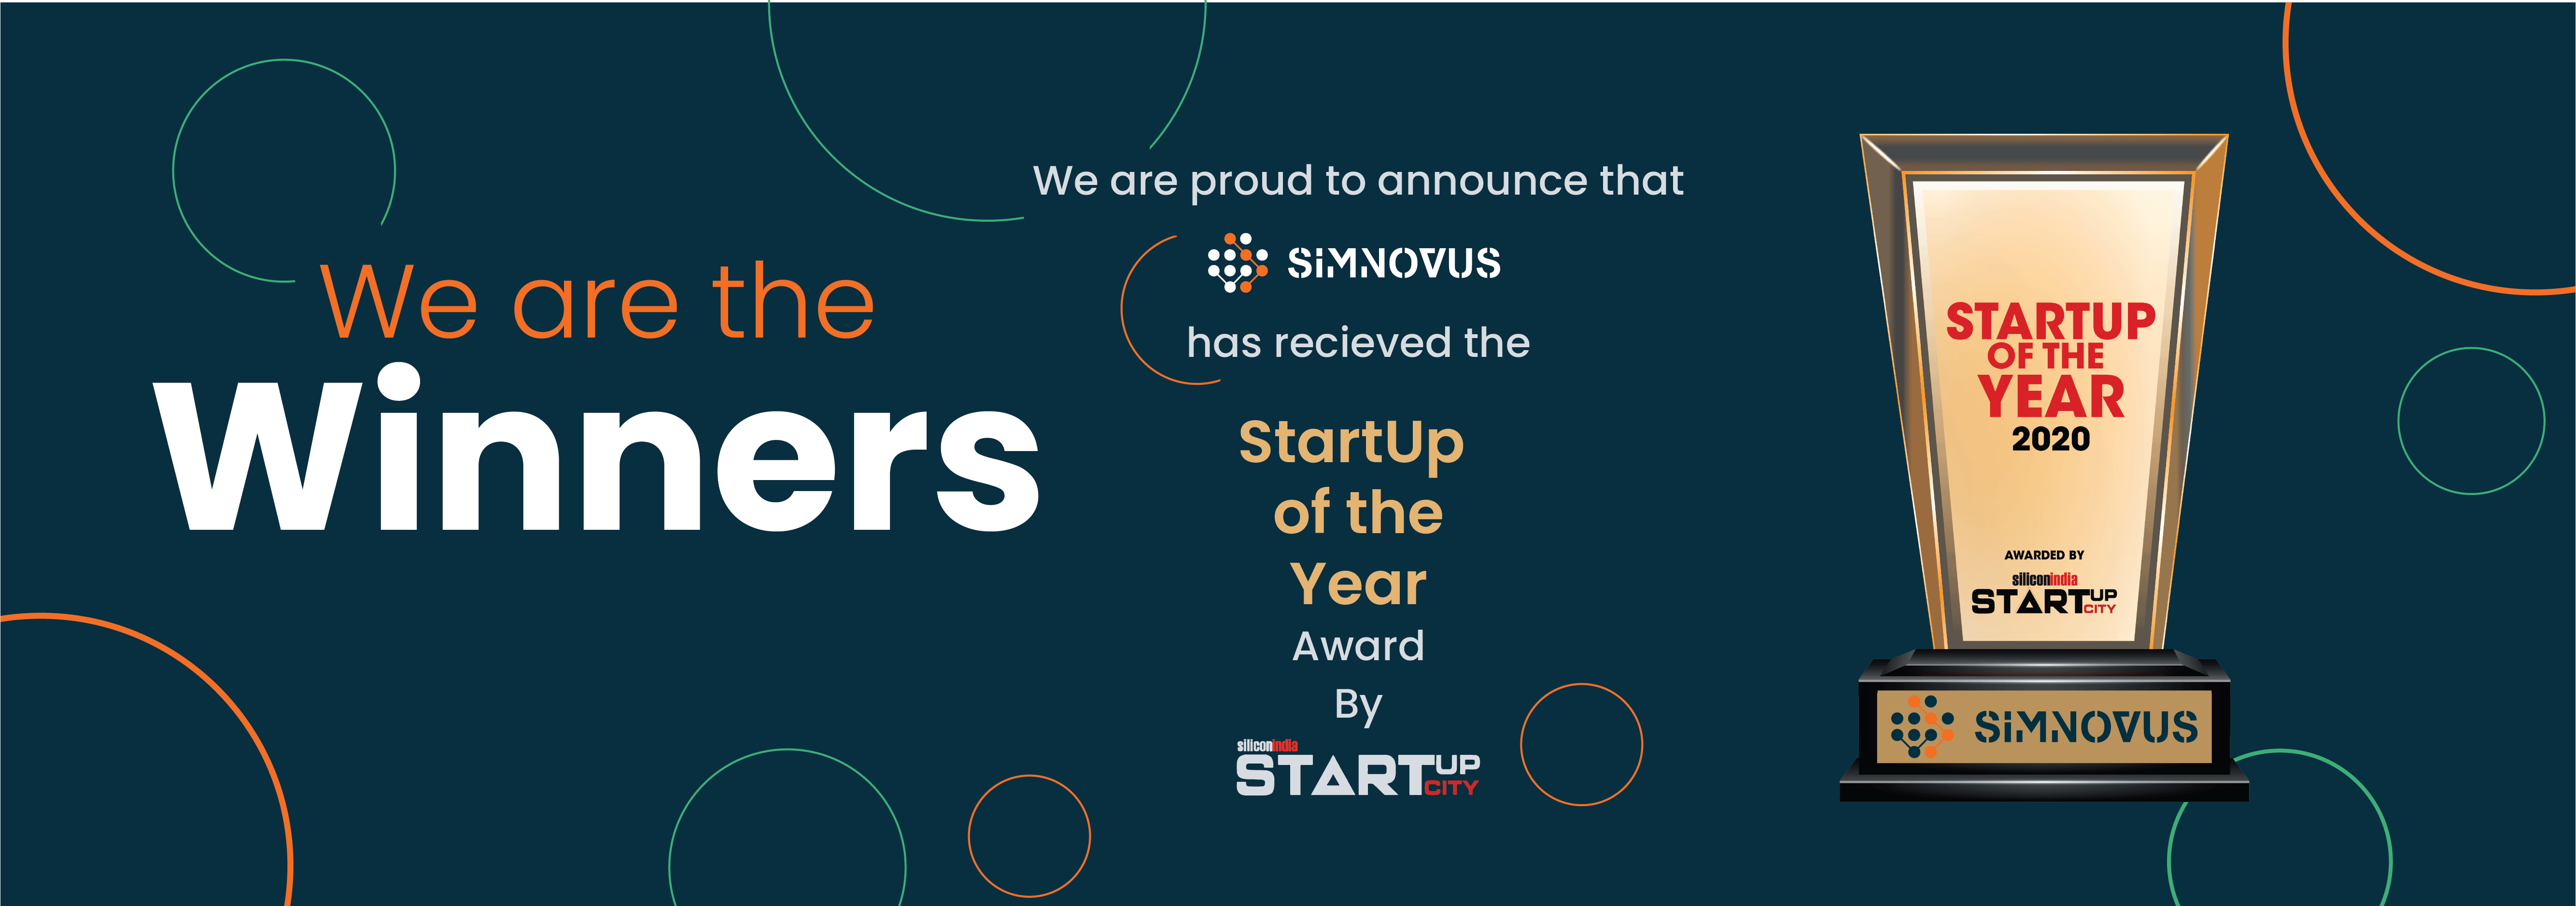 """Simnovus wins SiliconIndia's  """"startup of the year"""" award for '20"""